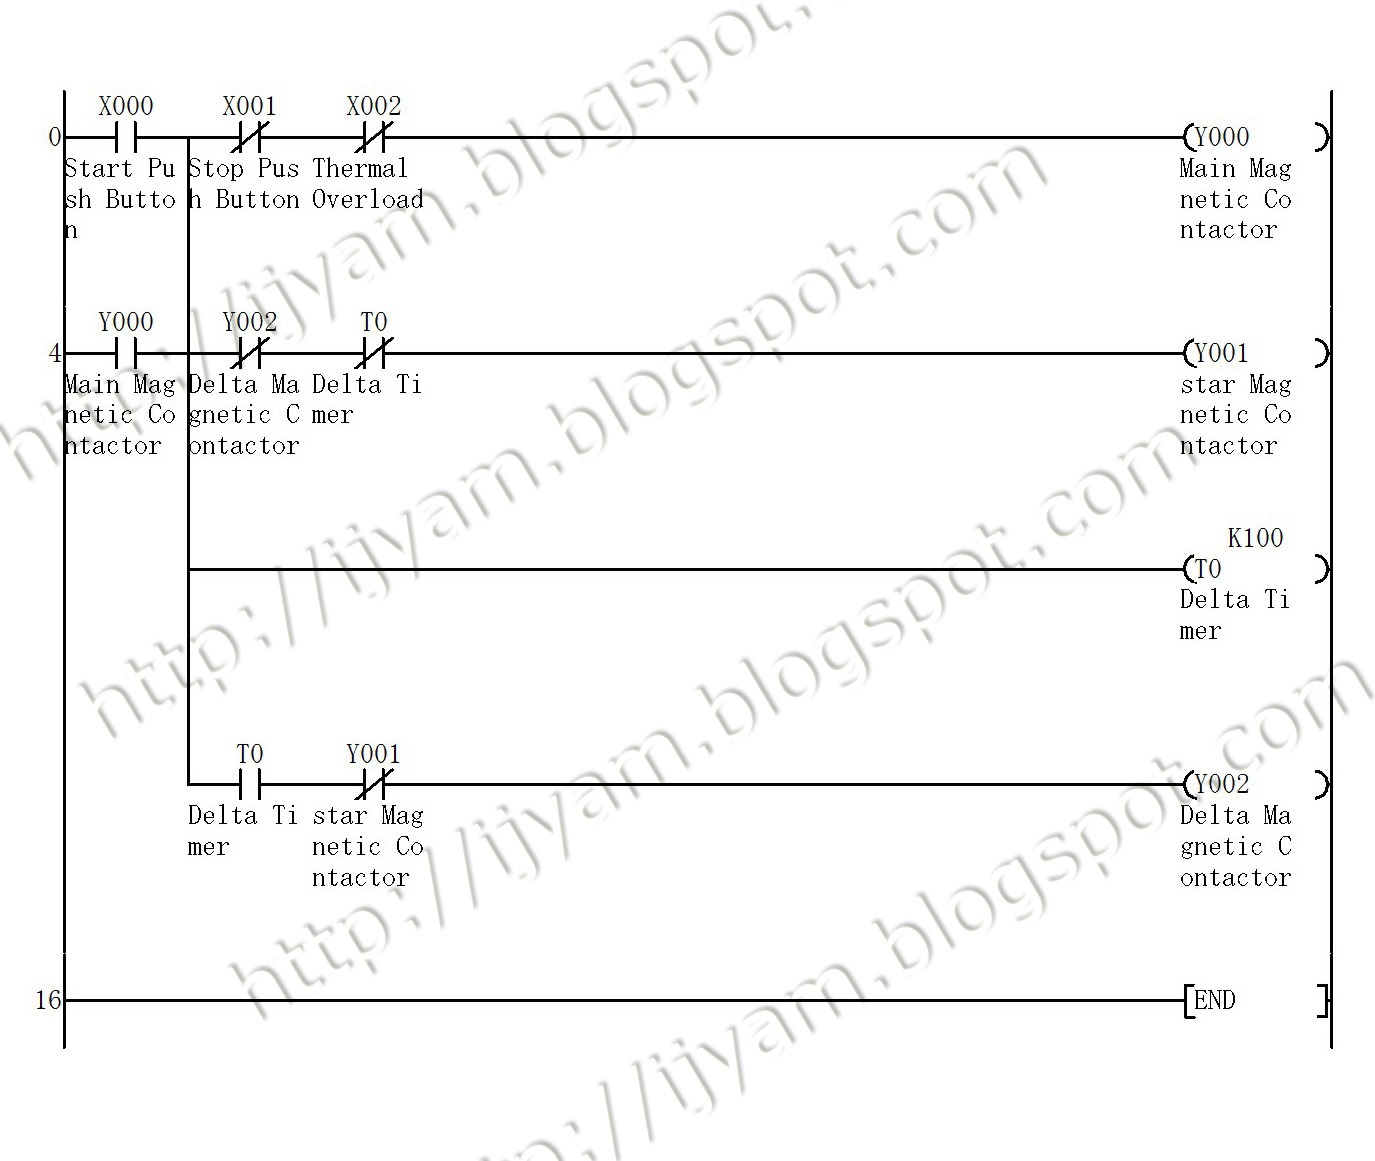 Star+Delta+Mitsubishi+PLC+Program+1 mitsubishi plc wiring diagram mitsubishi plc website \u2022 free wiring how to read plc wiring diagrams at nearapp.co